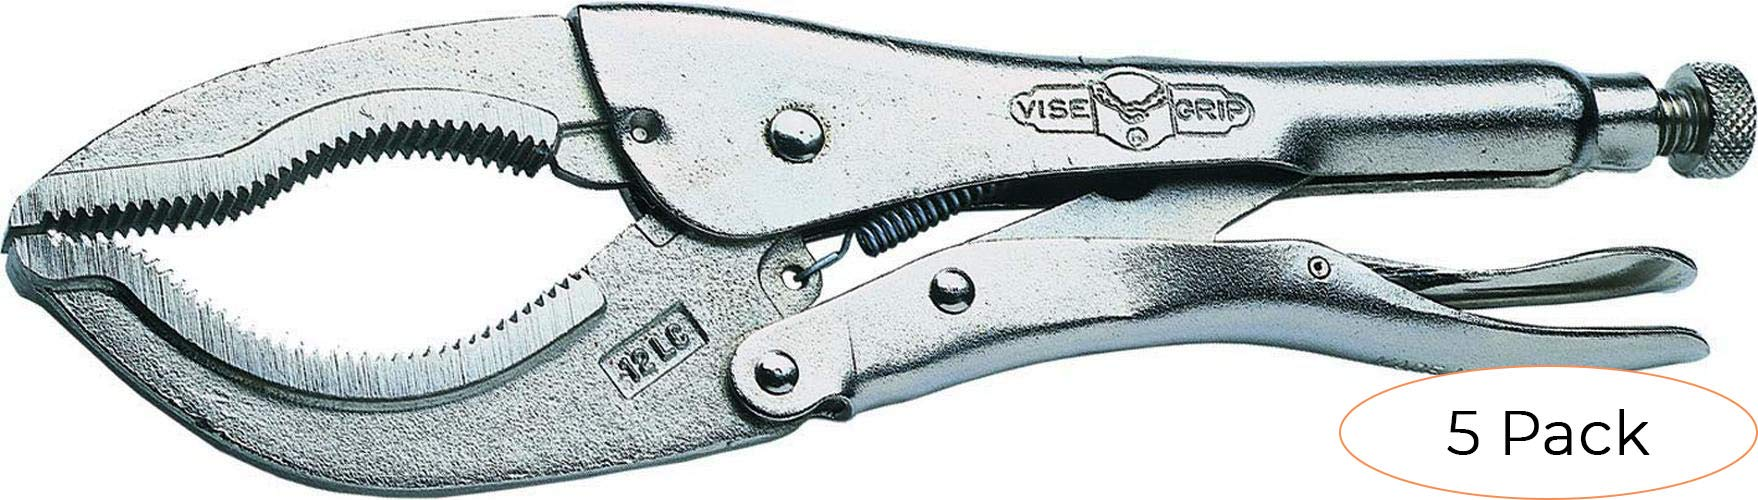 IRWIN VISE-GRIP Locking Pliers Set, Large, 12-Inch (12L3) (Pack 5) by IRWIN